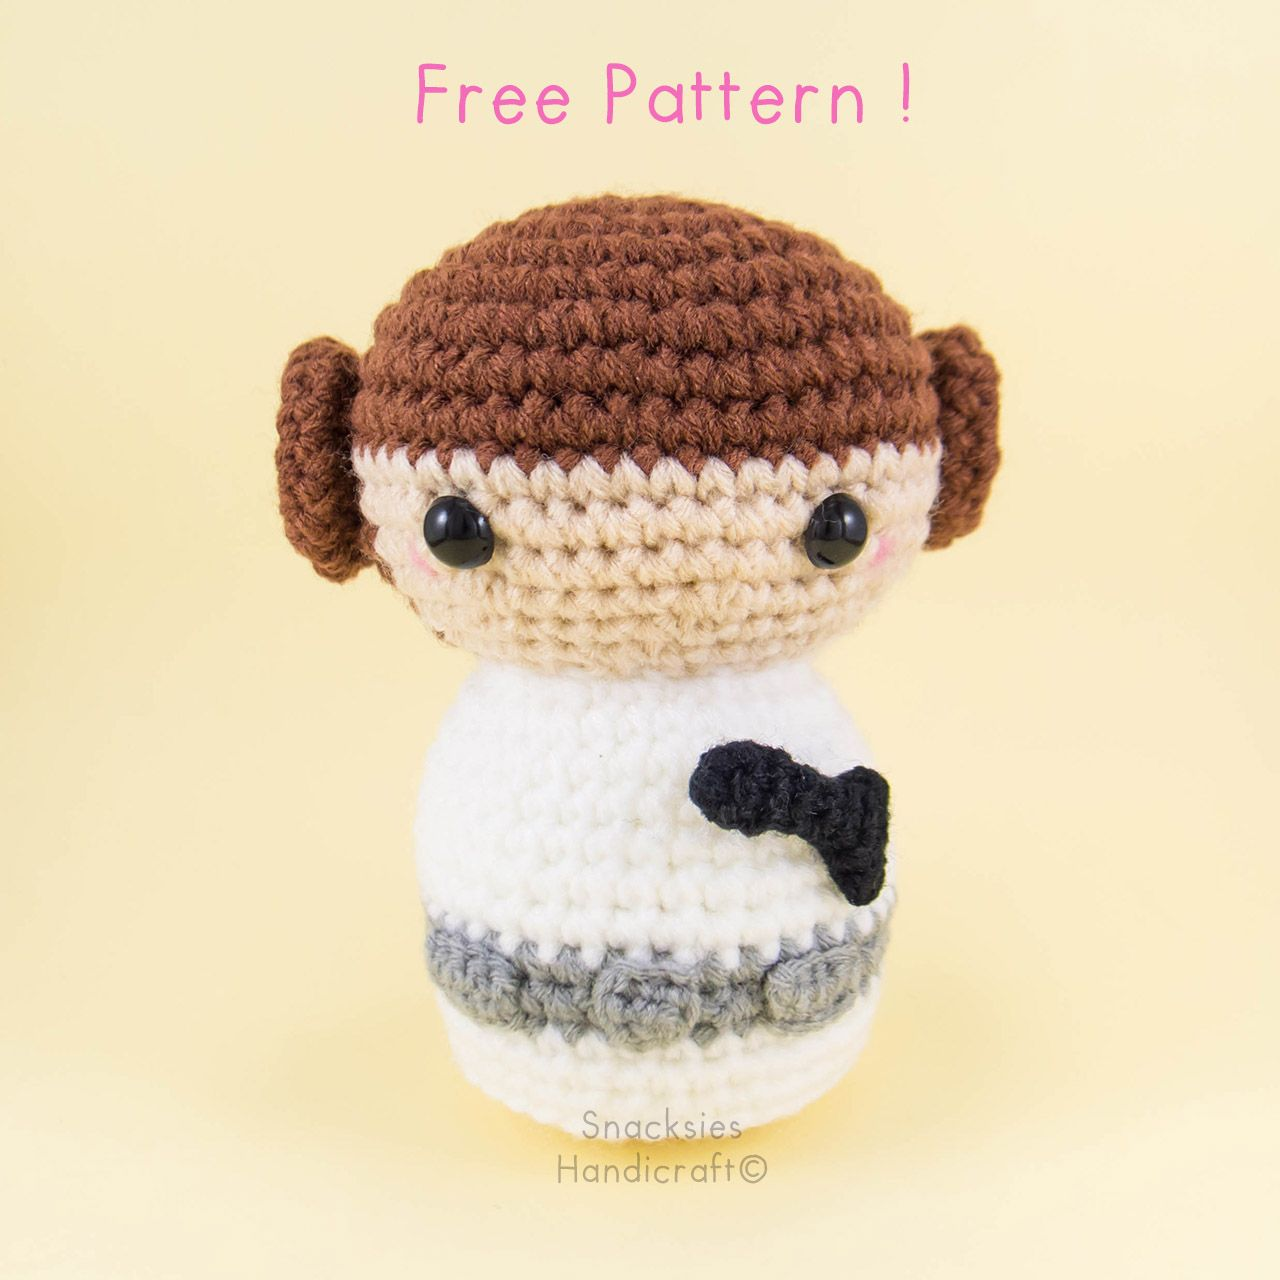 A blog about handmade crafts especially crocheted toys amigurumi princess leia amigurumi pattern free crochet pattern by snacksies bankloansurffo Images